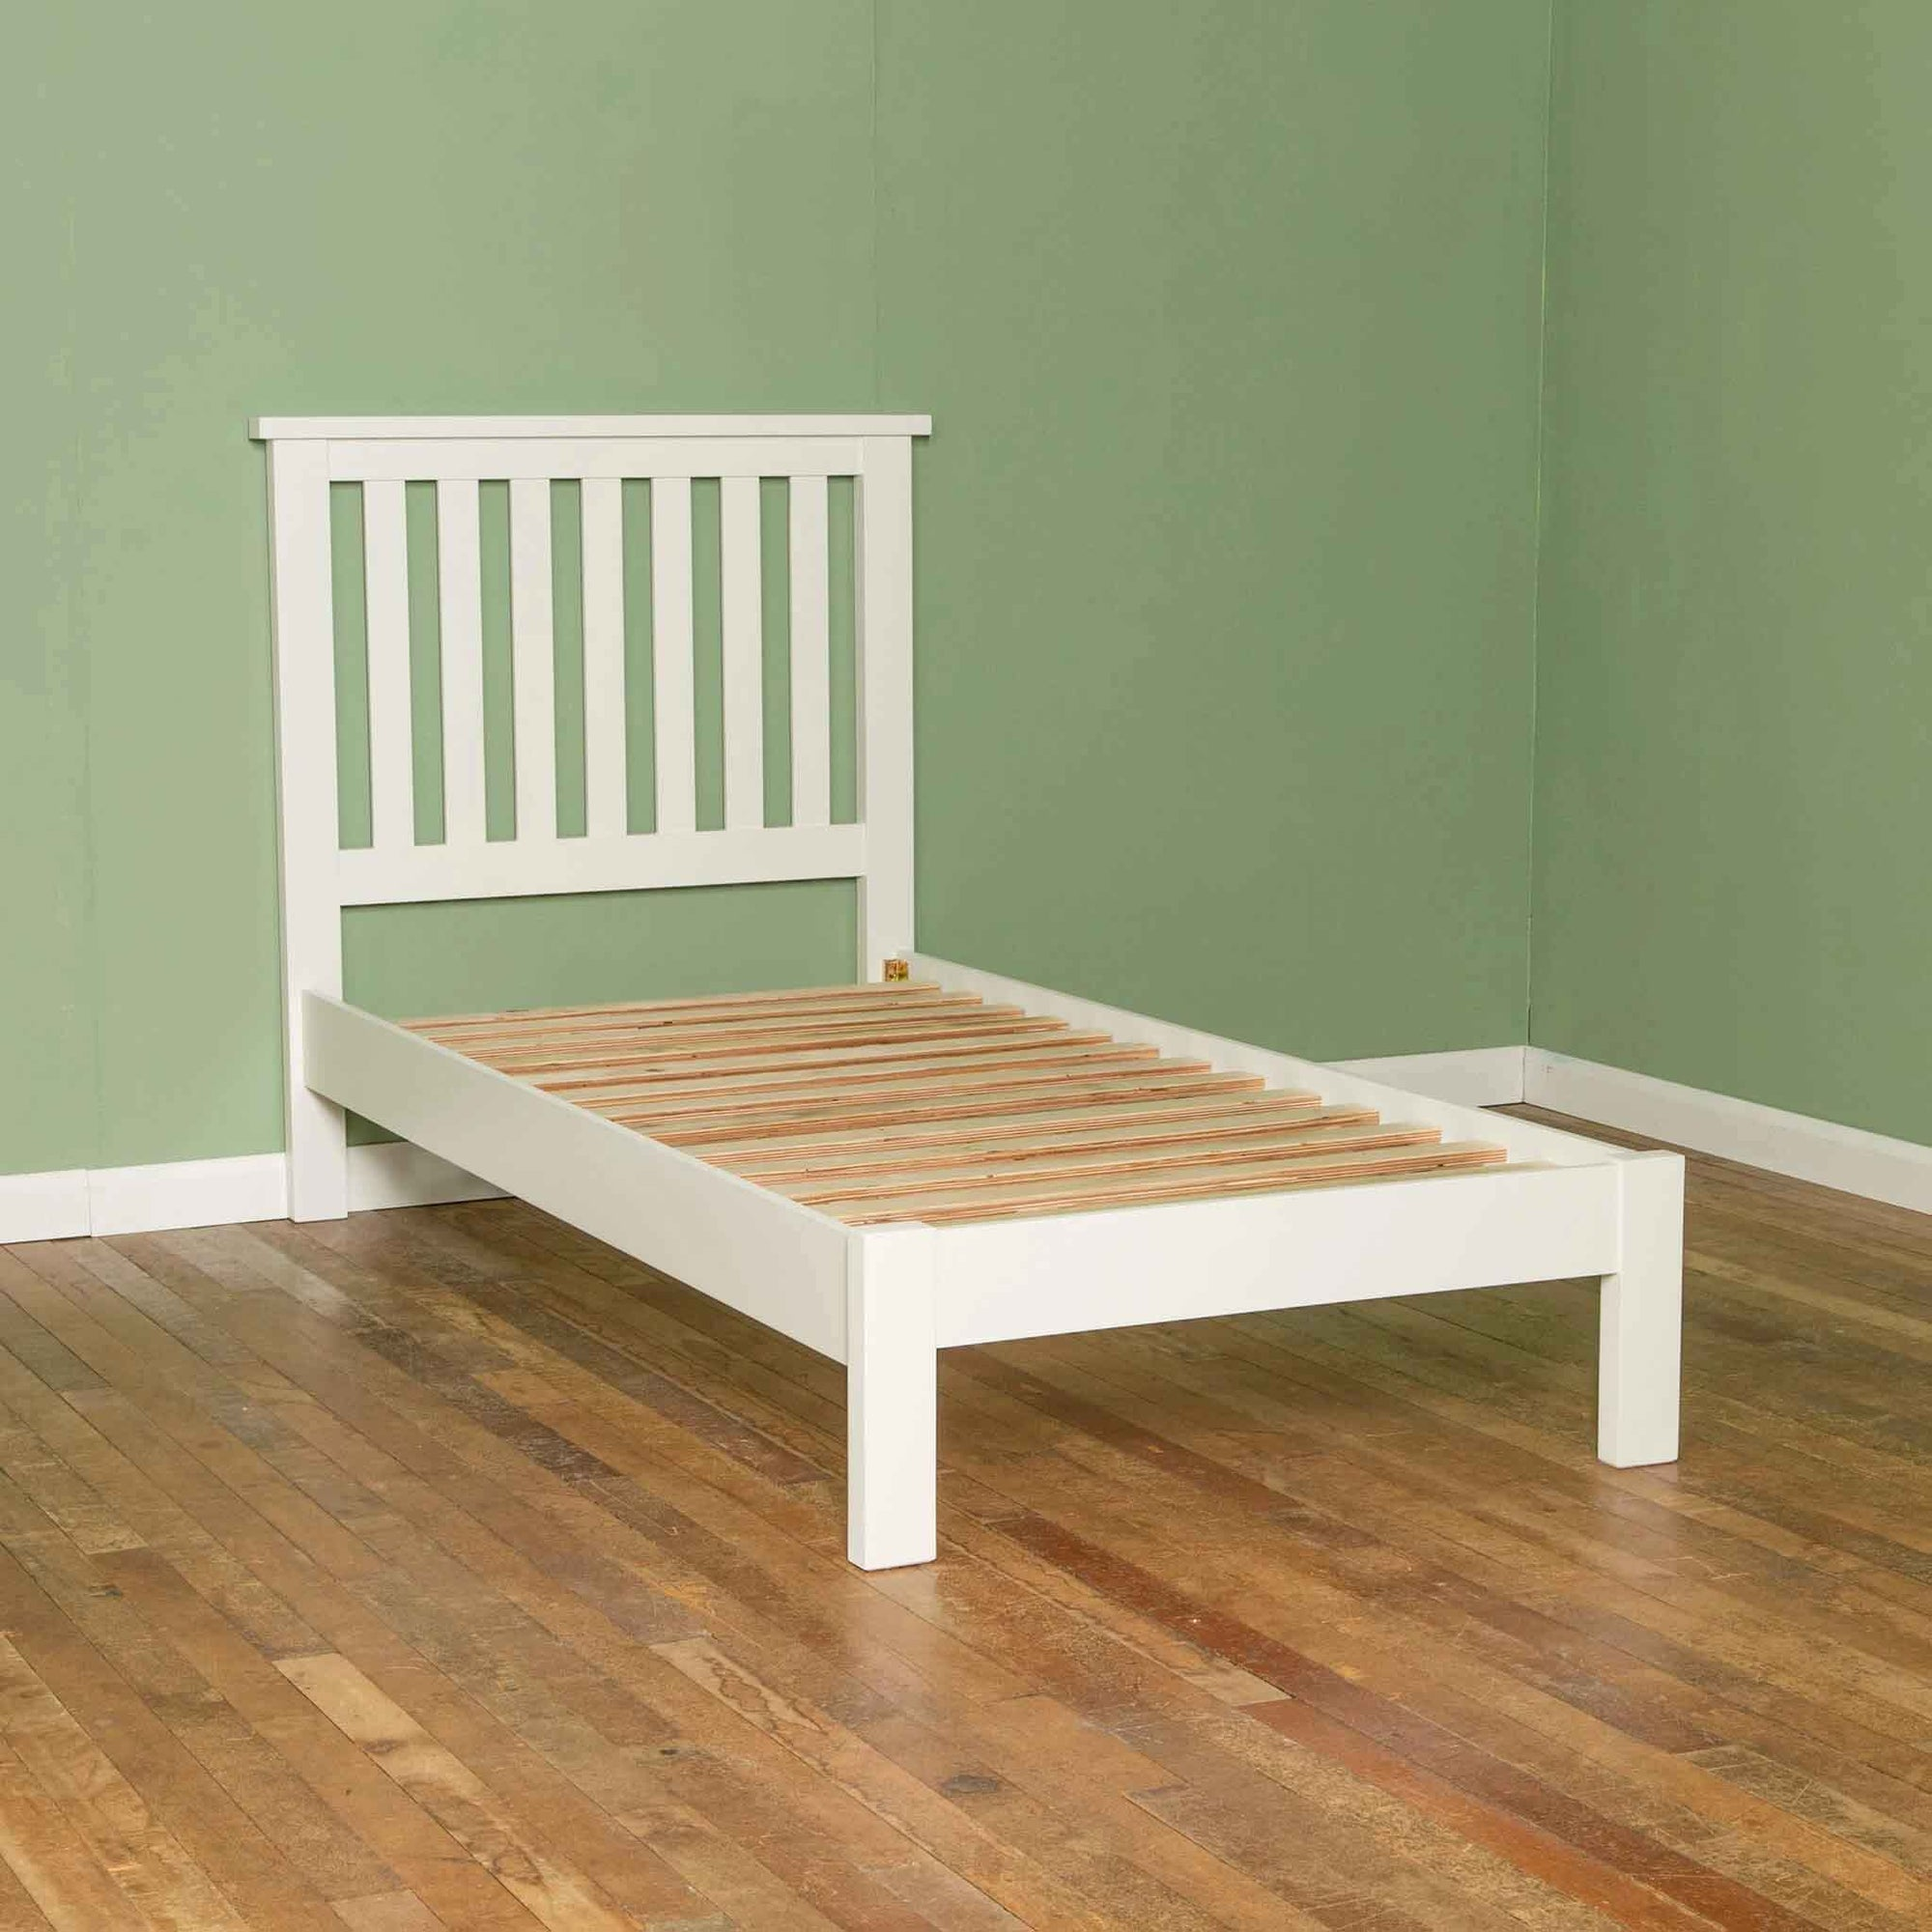 Cornish White 3 ft Single Wooden Bed Frame from Roseland Furniture